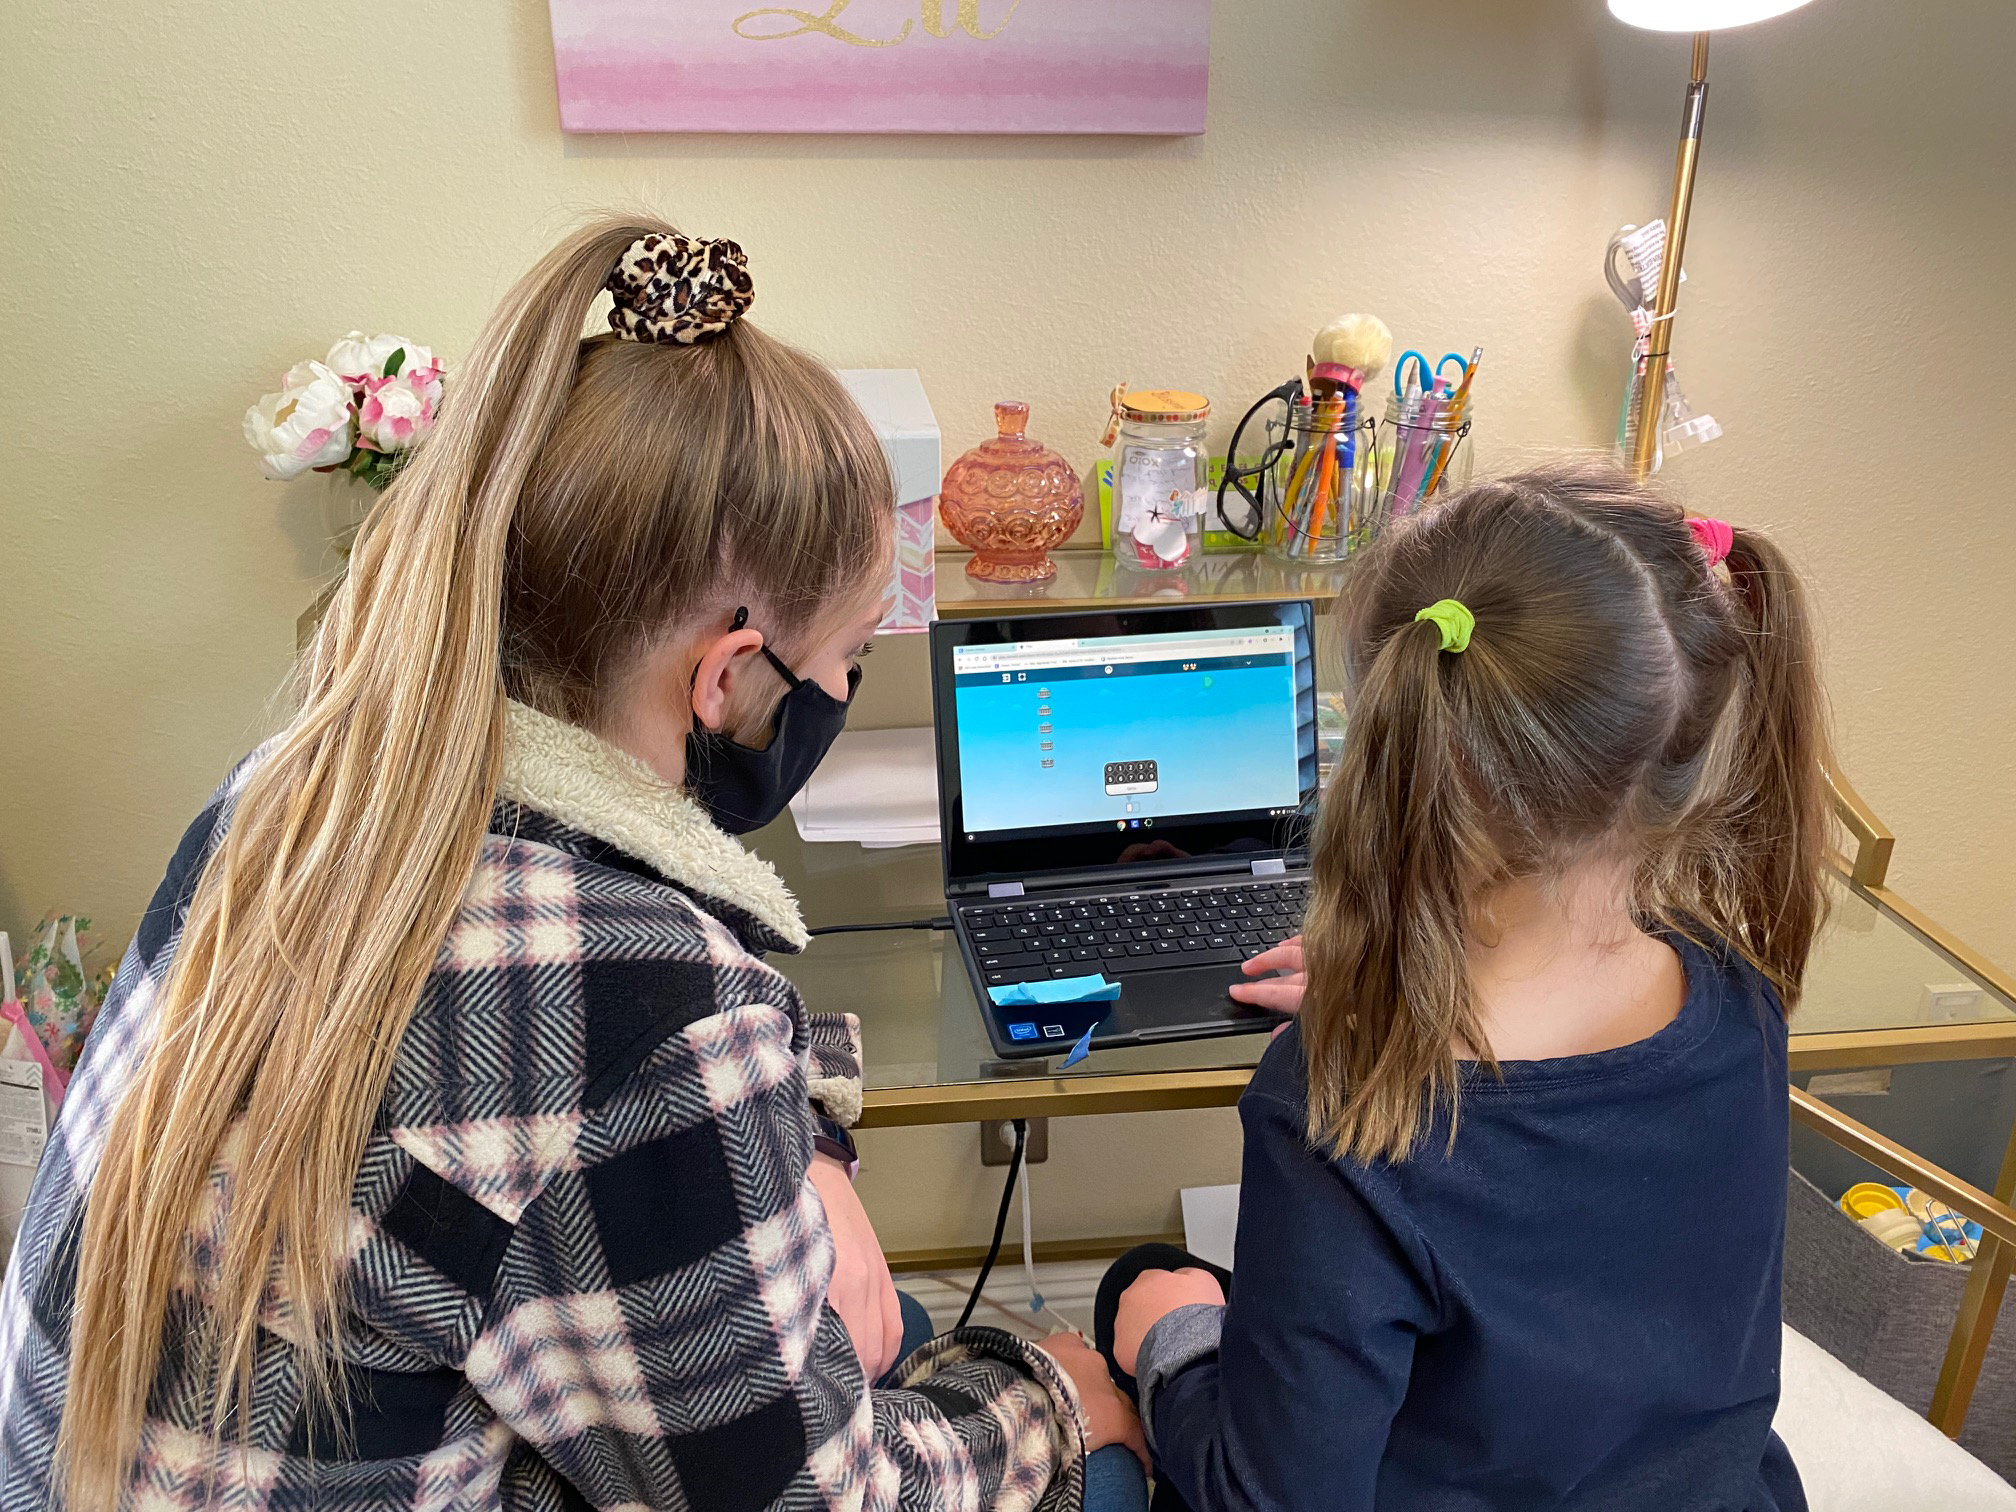 A child and adult work at computer.